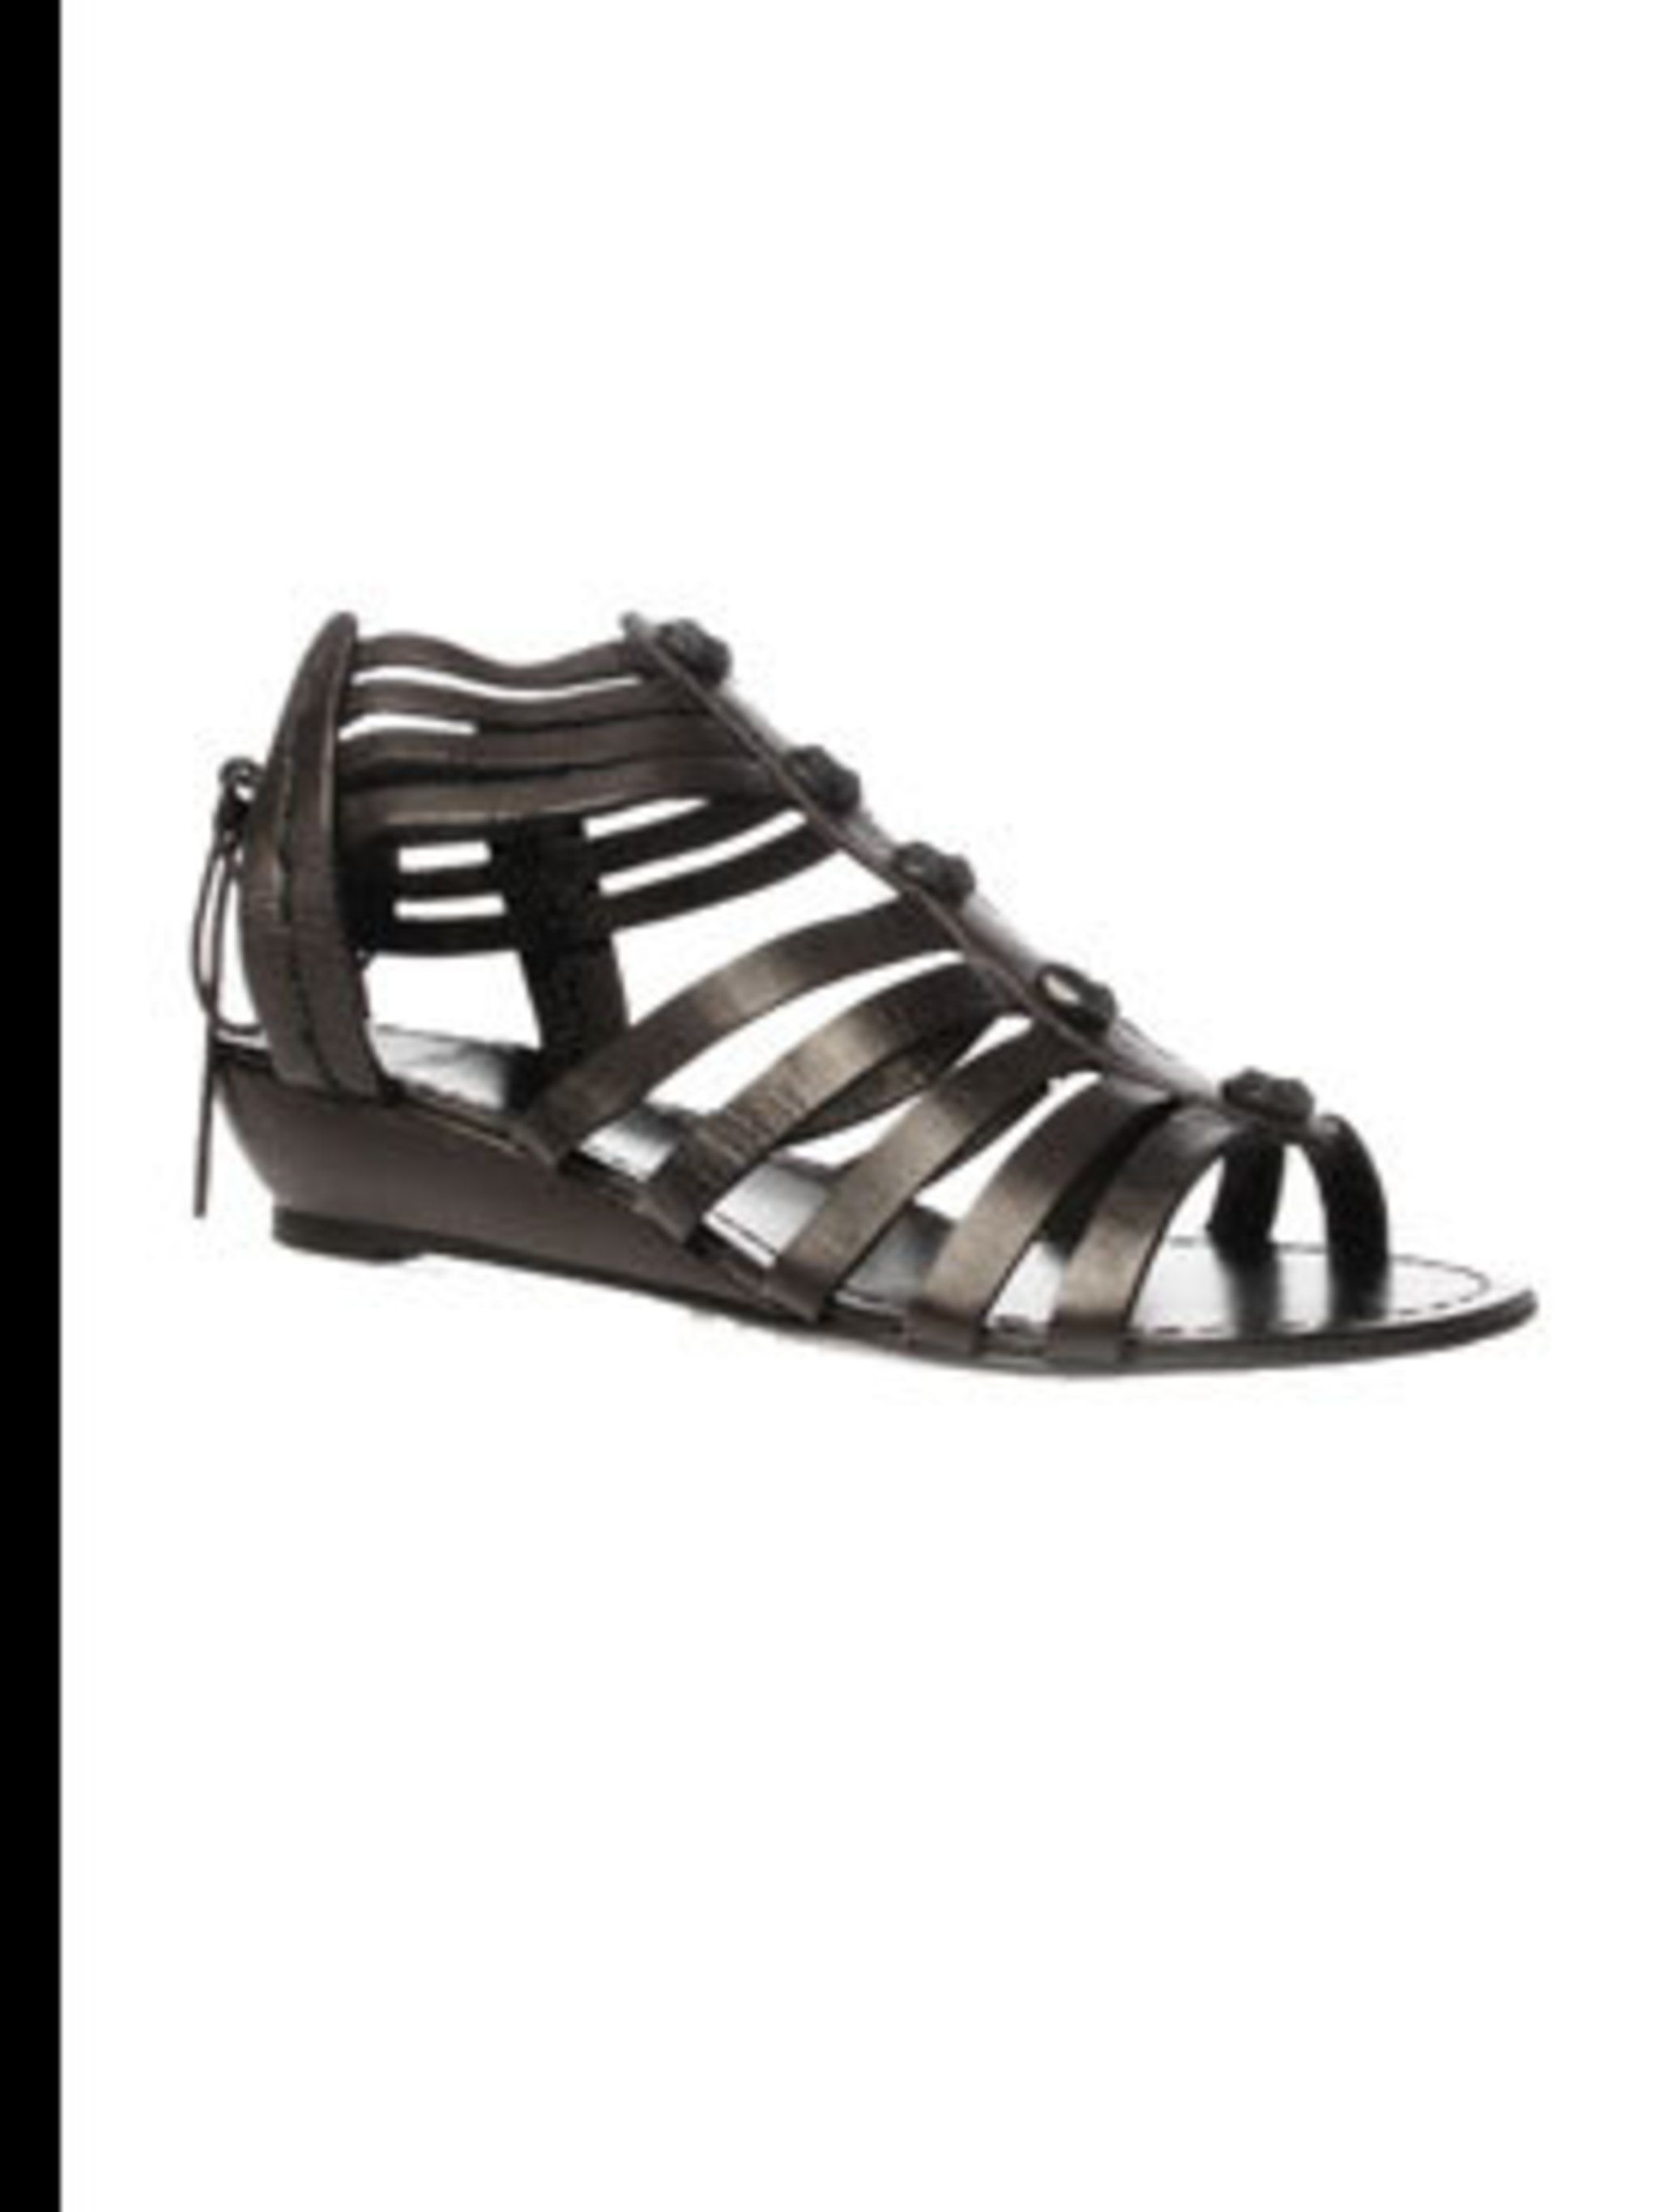 "<p>Black sandals, £75, by <a href=""http://www.kurtgeiger.com/online-shop/89063-carvela-kenedy"">Carvela</a></p>"